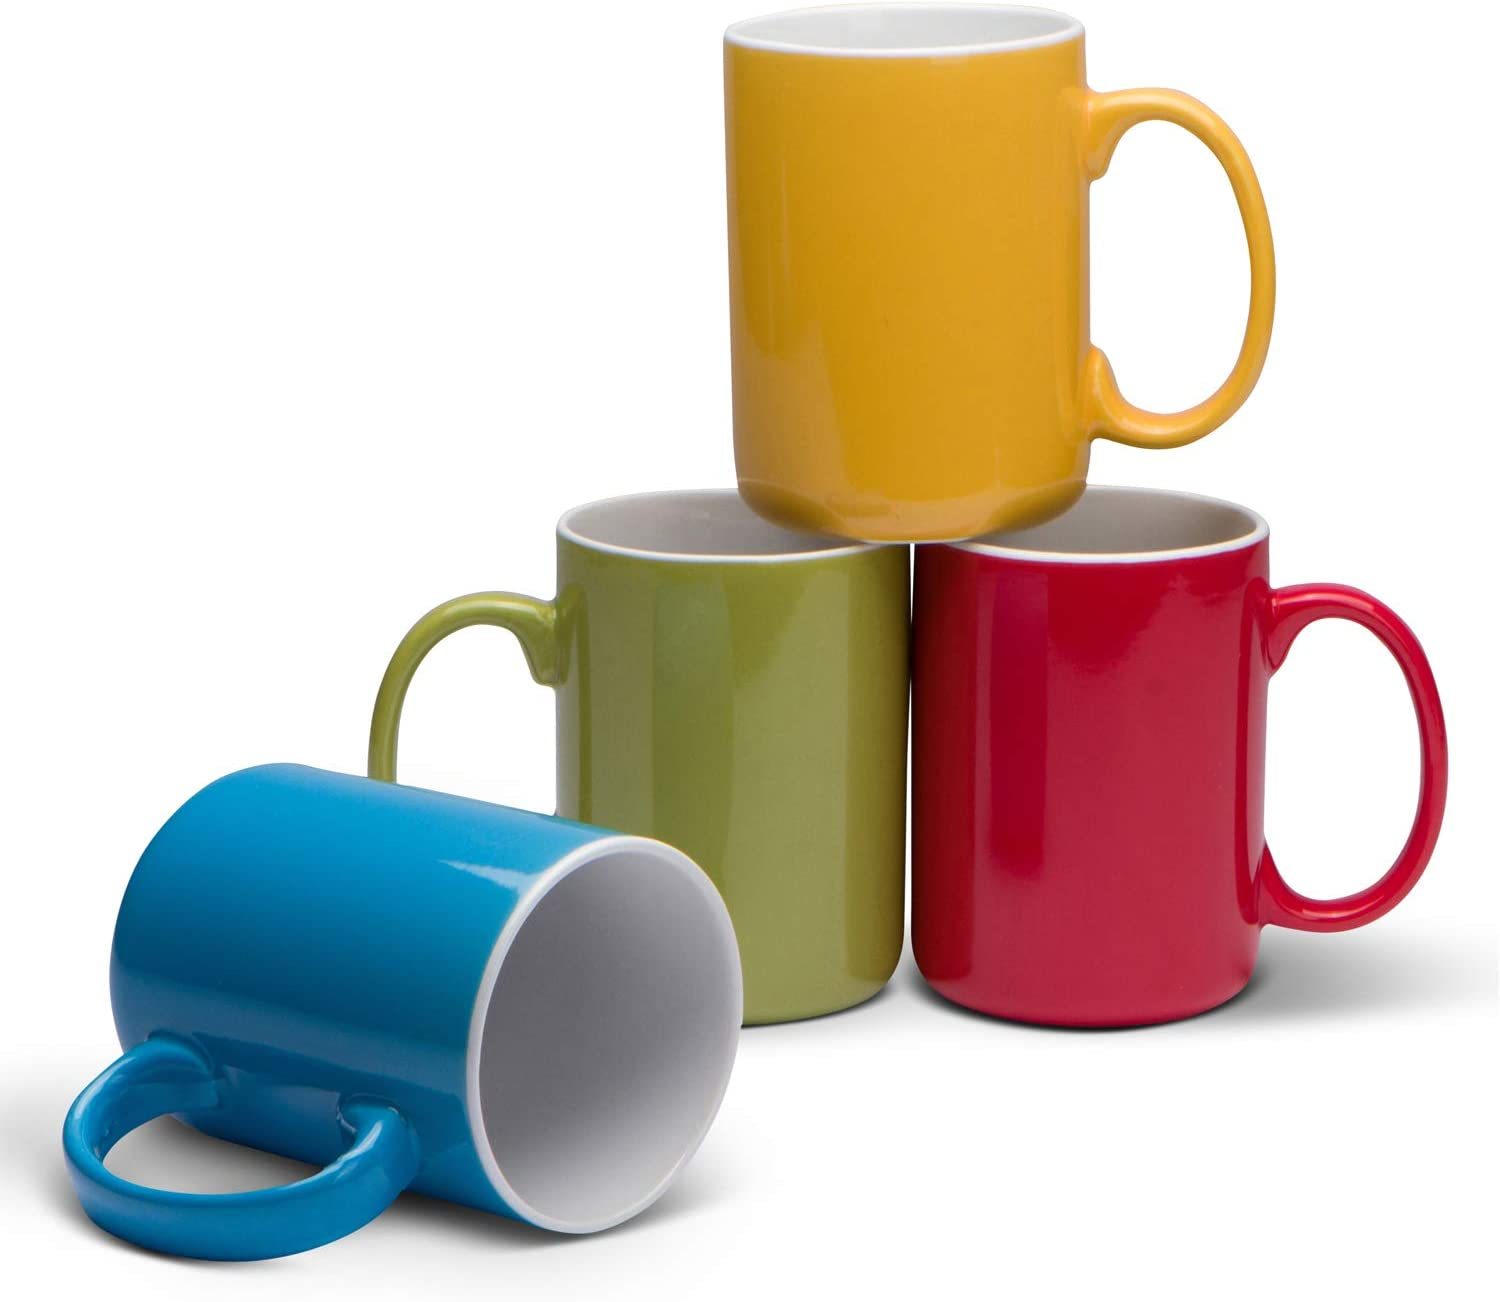 Serami 17oz Classic Color Mugs for Coffee or Tea. Large Handles and Ceramic Construction, Set of 4